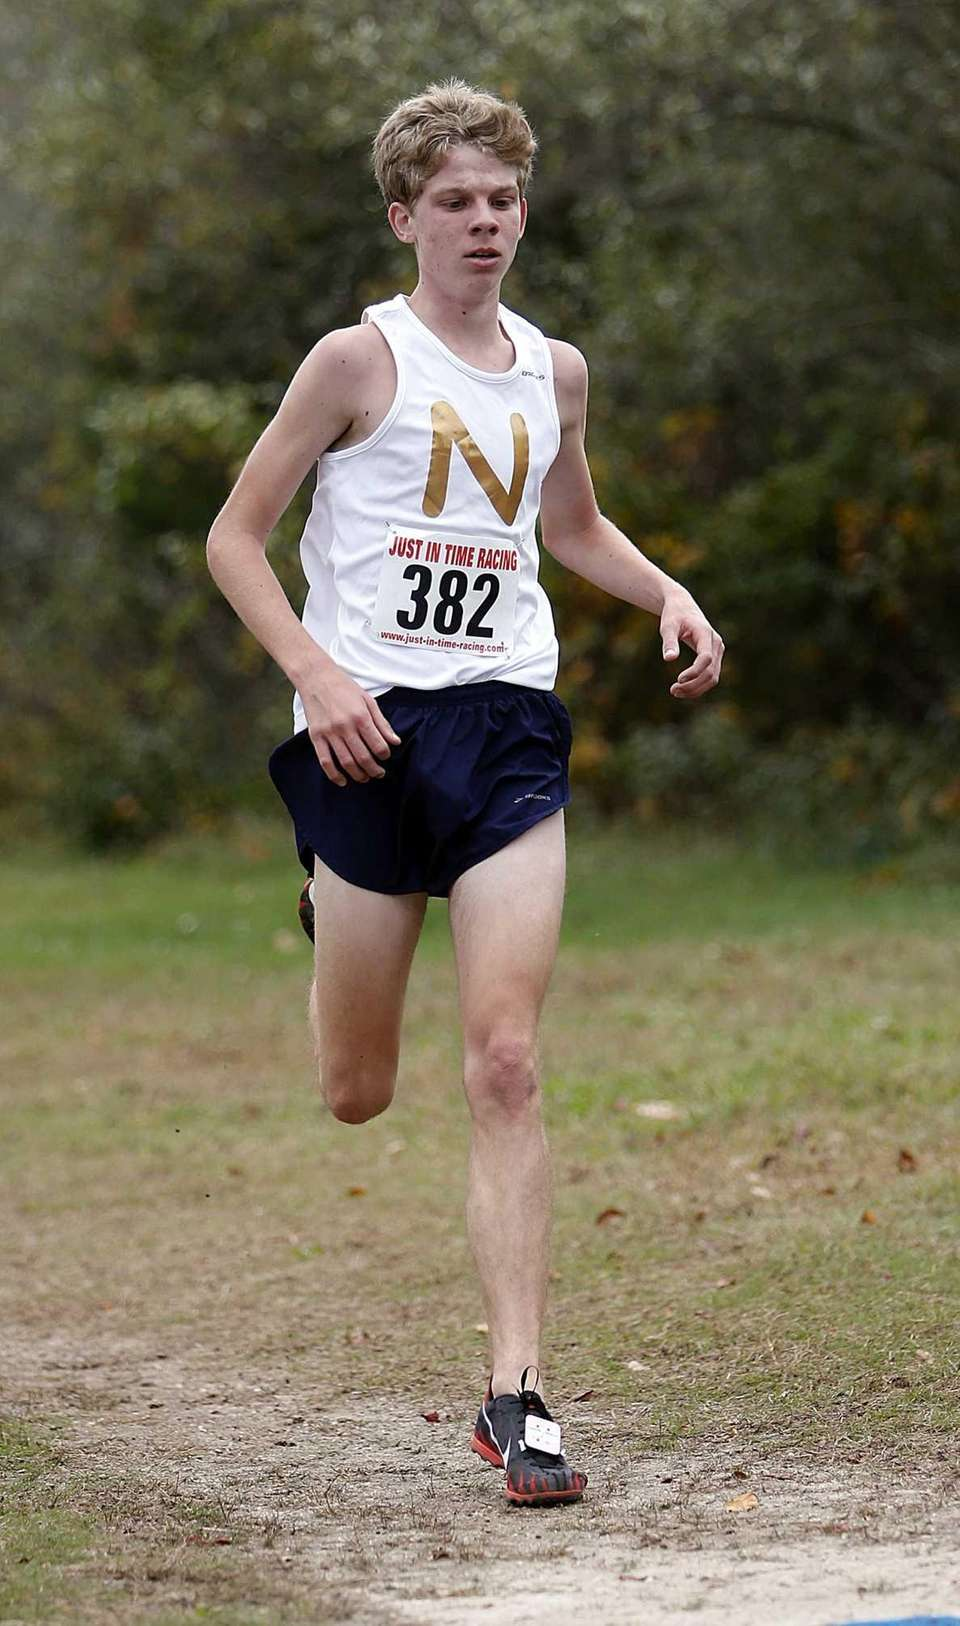 Northport's Tim McGowin (382) places second on his